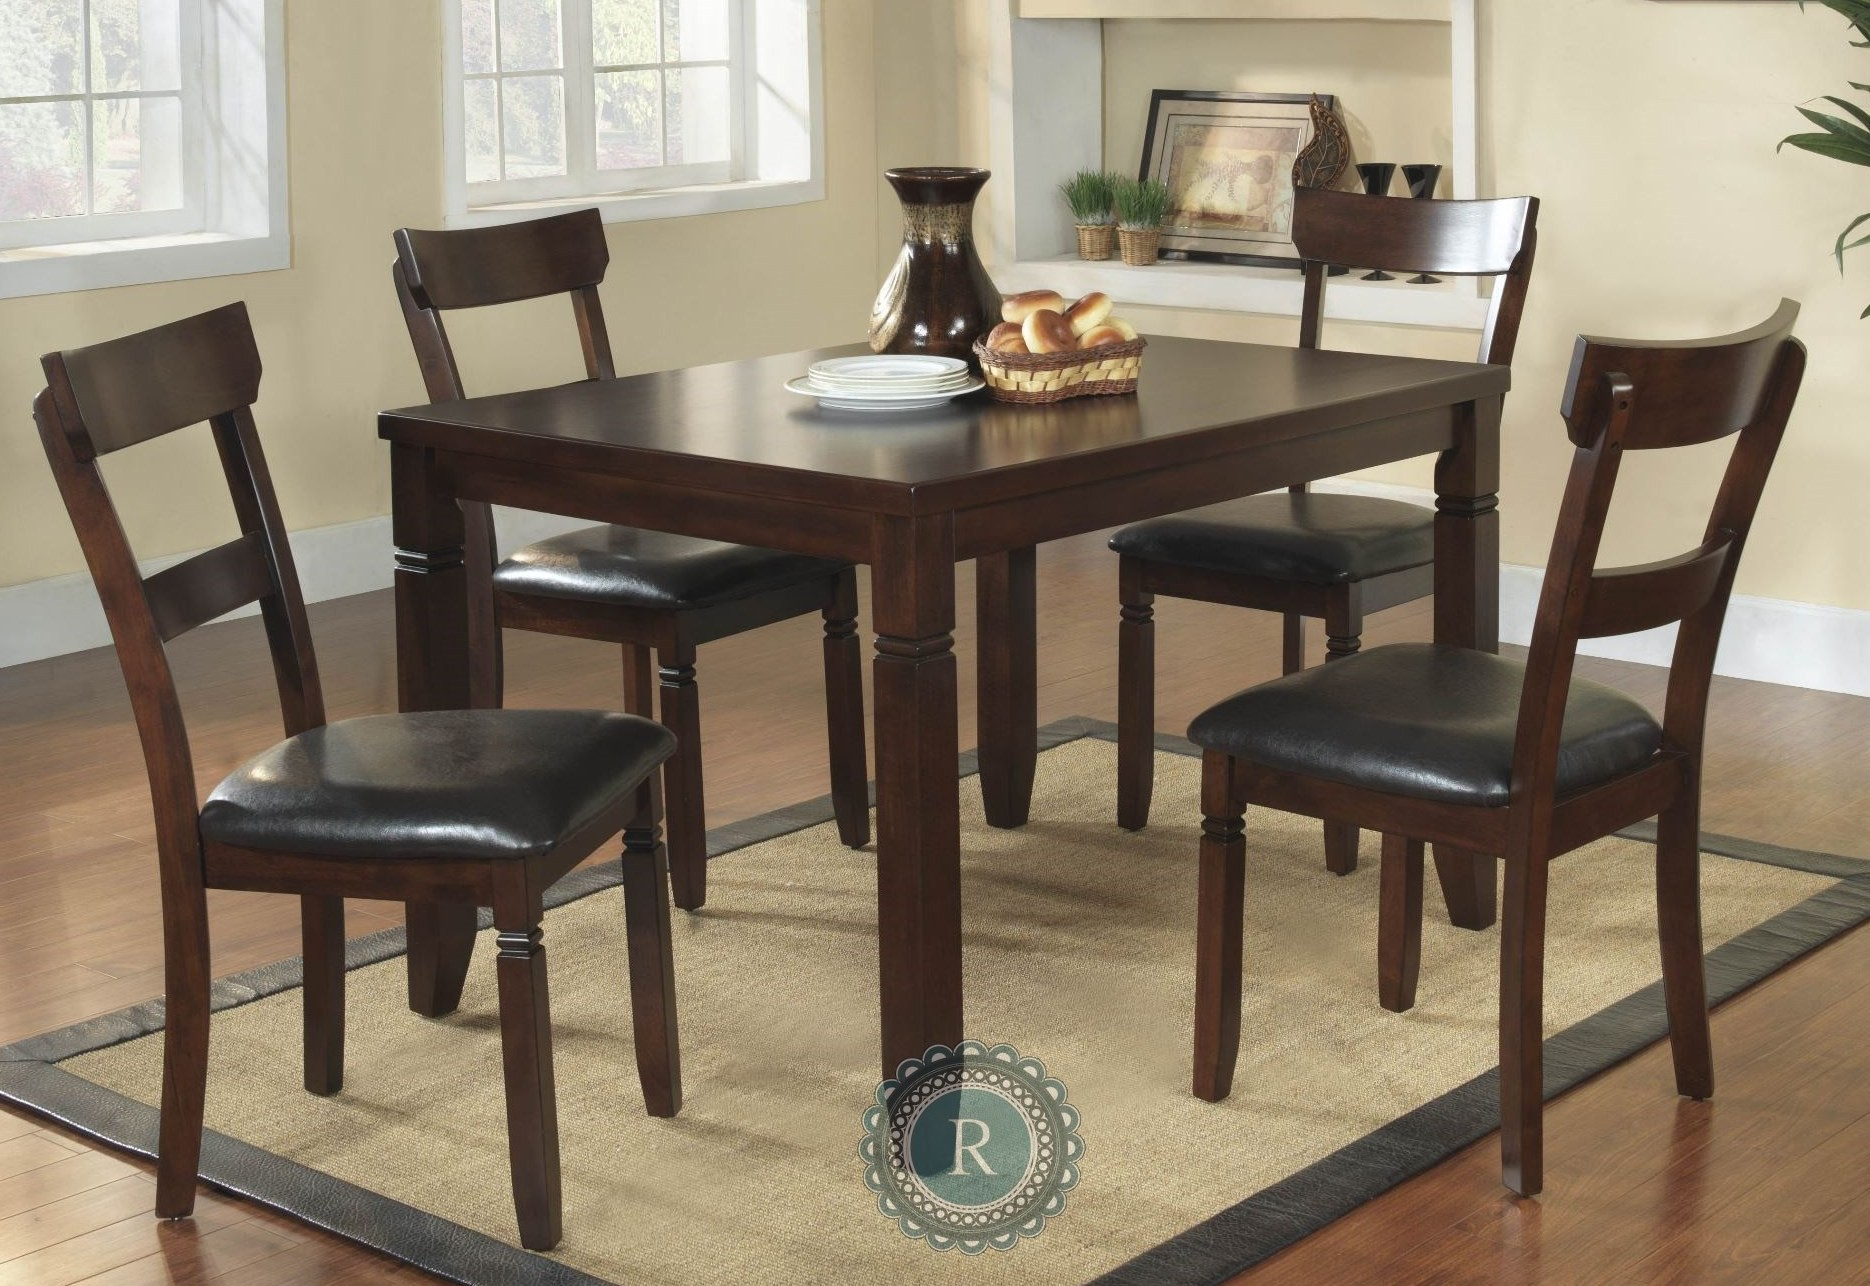 Oklahoma 5-Piece Pack Dinette Set From Homelegance (2469